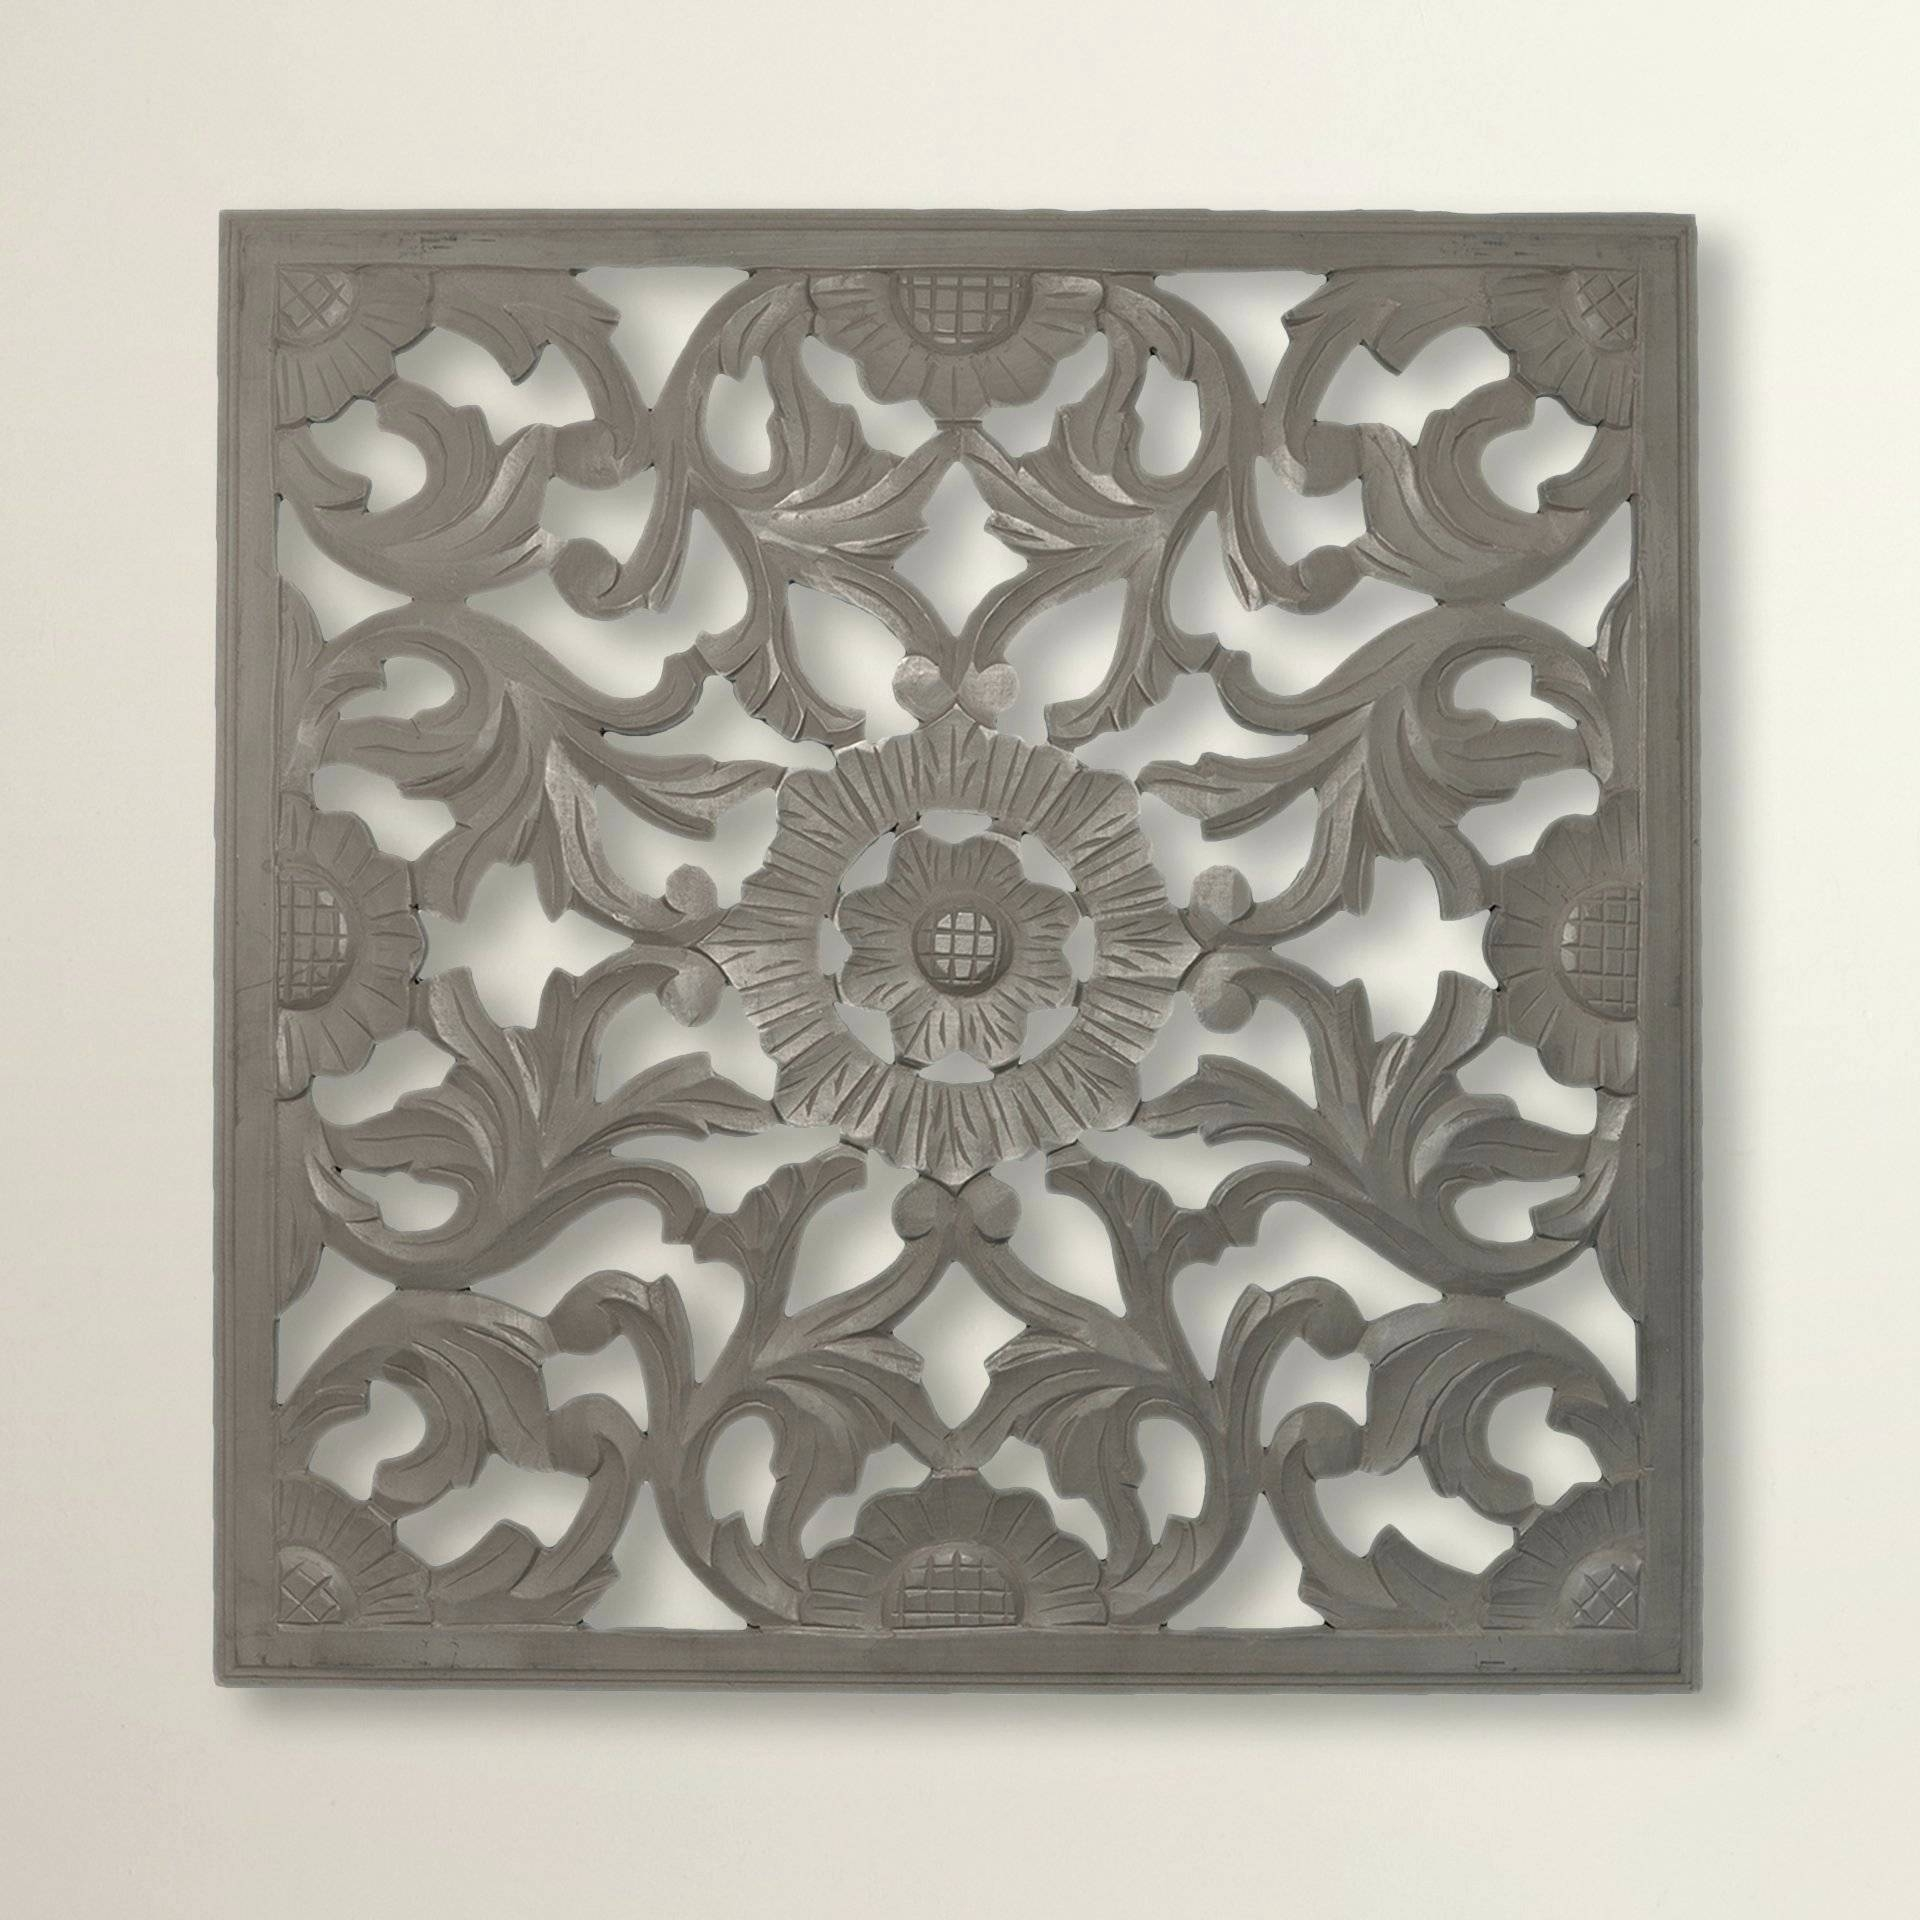 Wall Arts ~ Chic Rustic Metal Wall Art Rustic Wall Decor Awesome With Regard To Most Recently Released White Metal Wall Art (View 17 of 20)